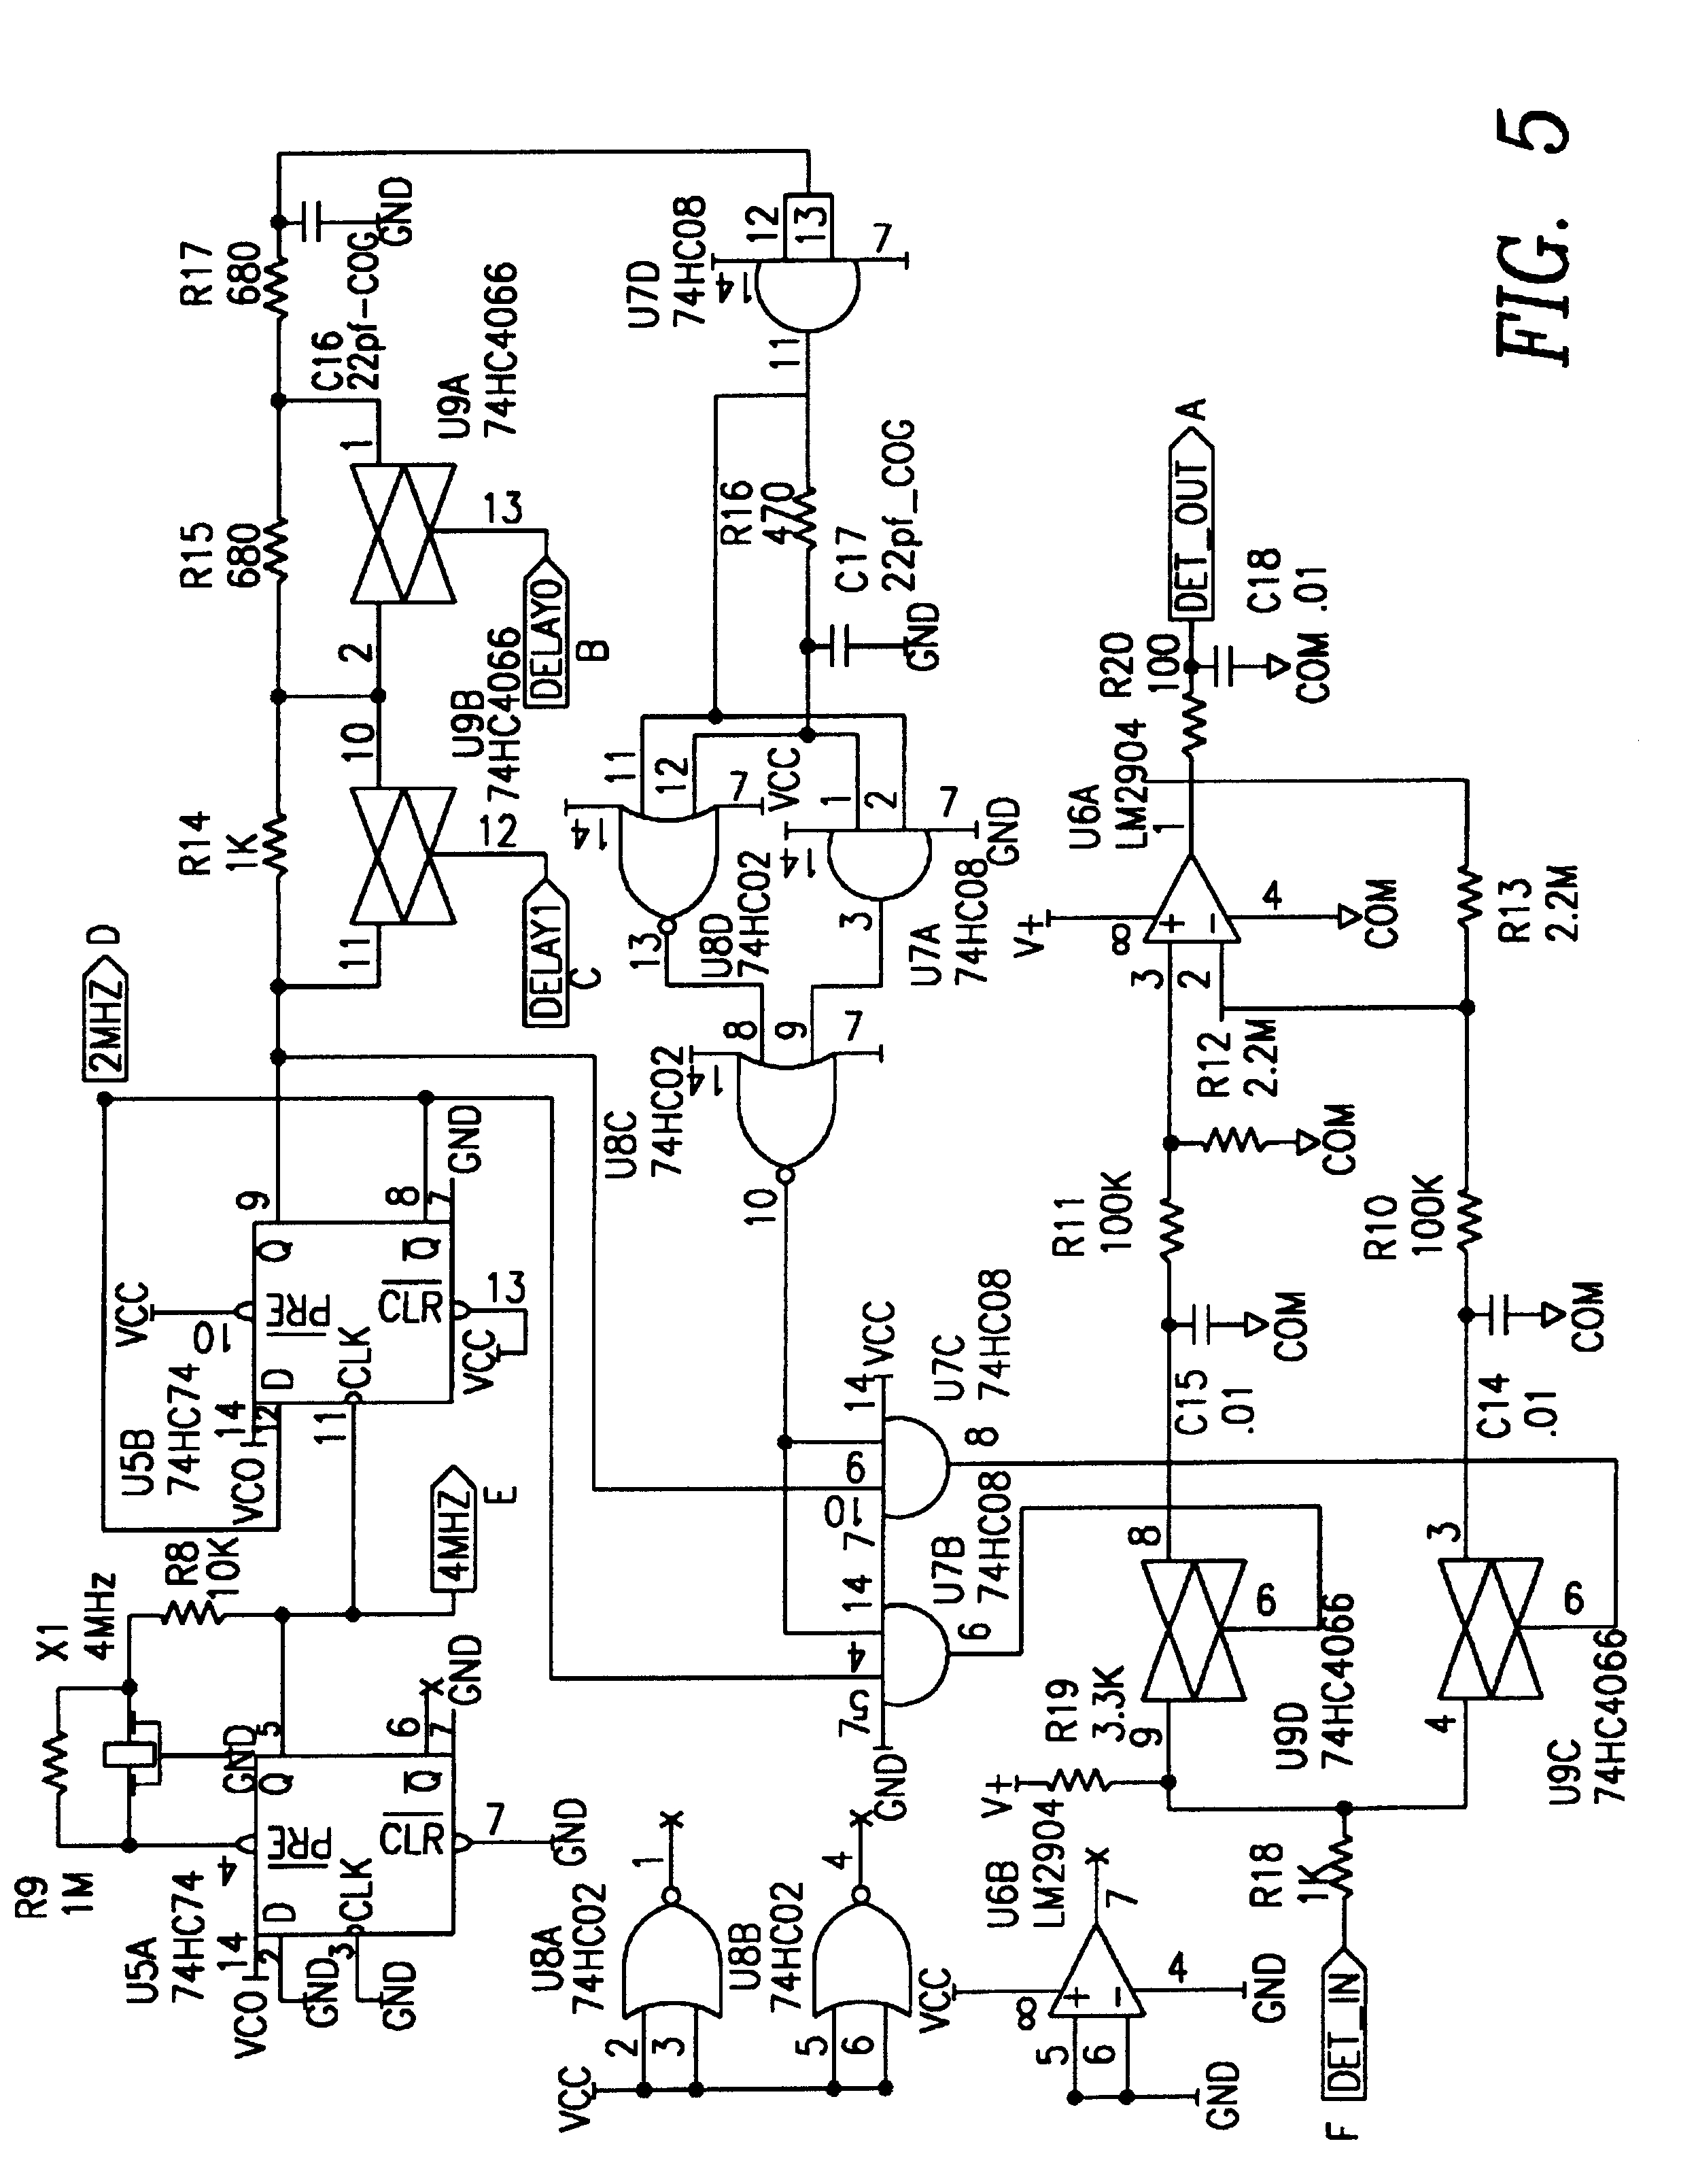 Diagram Hatco Wiring Diagram Gallery File Yr83019 on lang wiring diagram, jackson wiring diagram, kitchenaid wiring diagram, alto shaam wiring diagram, kolpak wiring diagram, general electric wiring diagram, viking wiring diagram, traulsen wiring diagram, panasonic wiring diagram, fast wiring diagram, middleby marshall wiring diagram, amana wiring diagram, whirlpool wiring diagram, hobart wiring diagram, merco wiring diagram, electrolux wiring diagram, beverage air wiring diagram, metro wiring diagram, fisher wiring diagram, star wiring diagram,